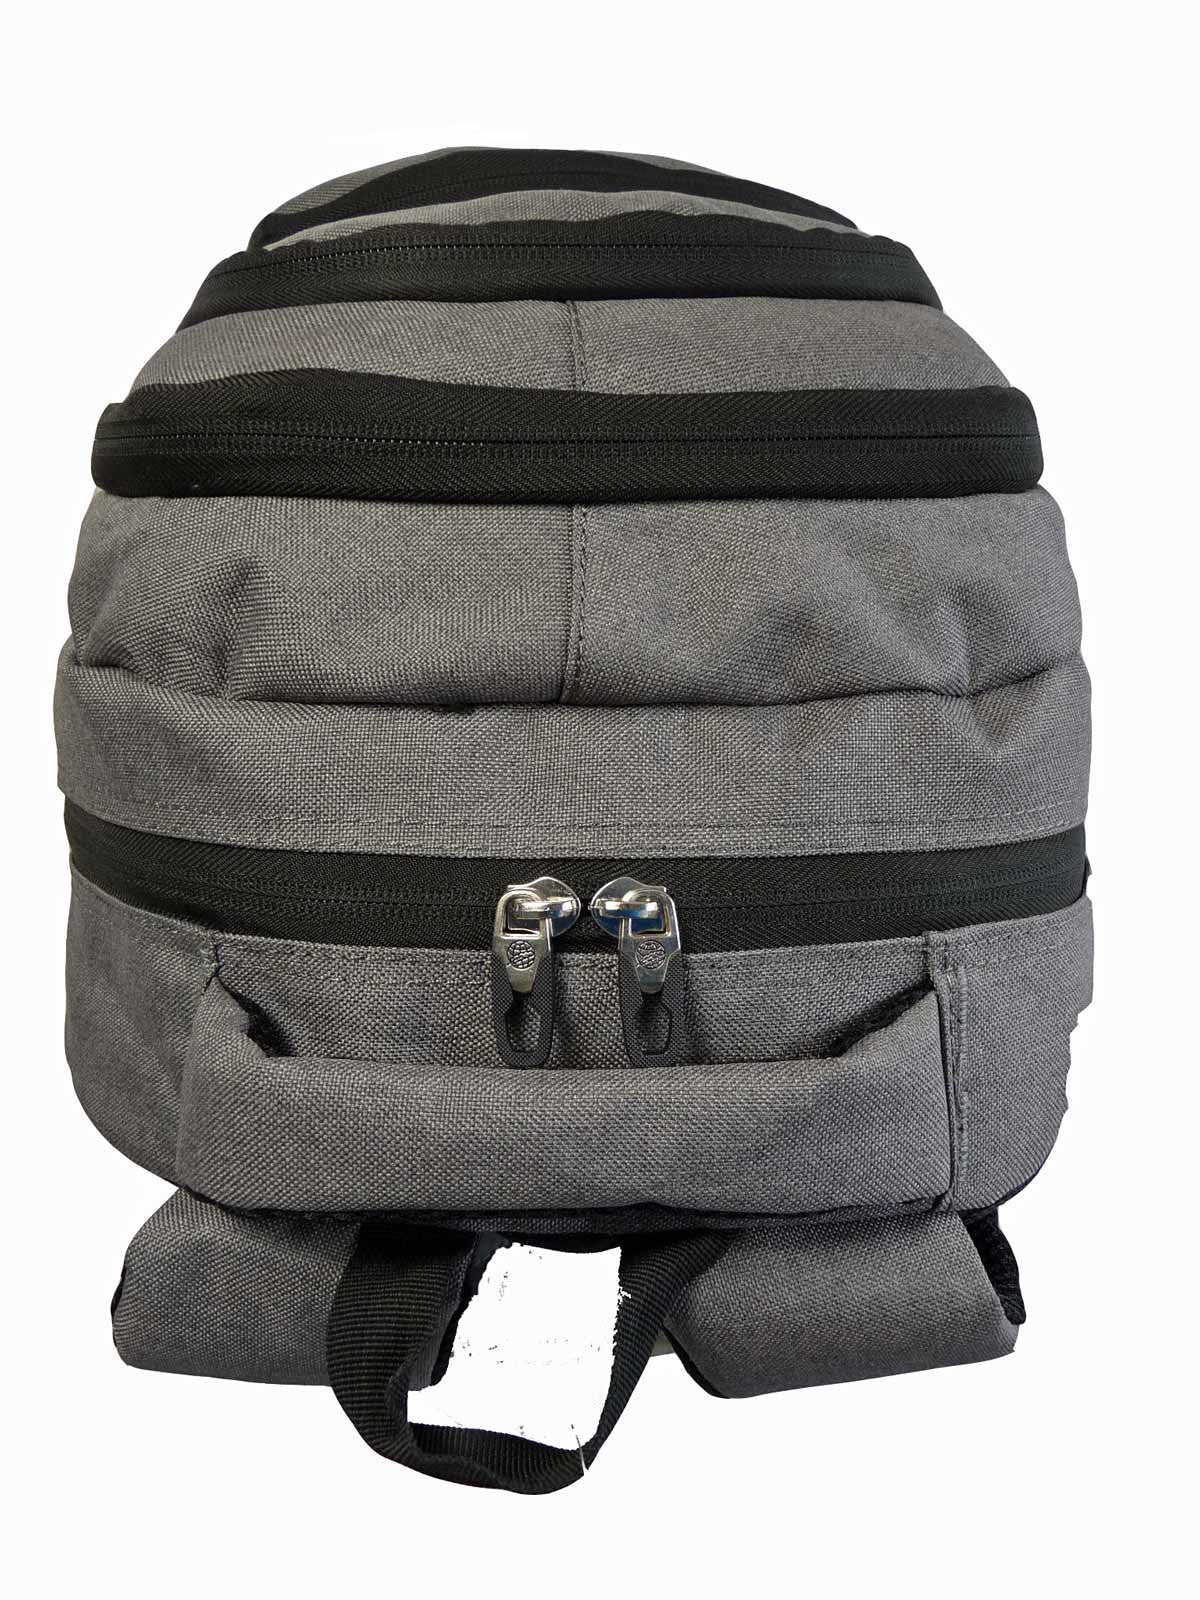 Laptop Macbook Backpack Rucksack Bag RL43GY Top View